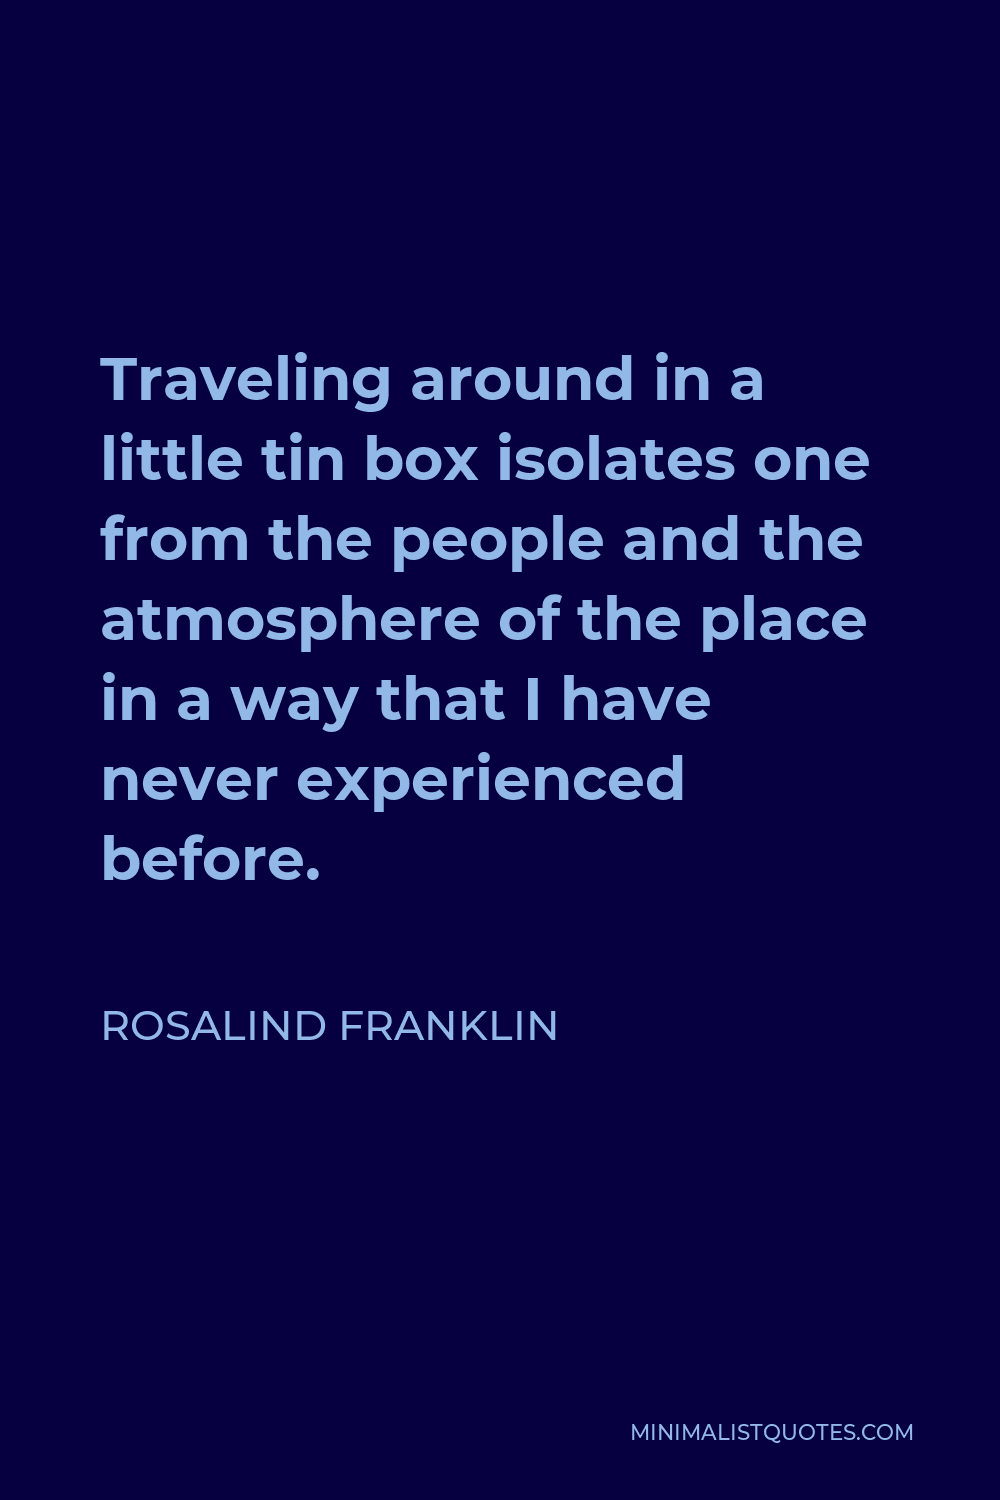 Rosalind Franklin Quote - Traveling around in a little tin box isolates one from the people and the atmosphere of the place in a way that I have never experienced before.